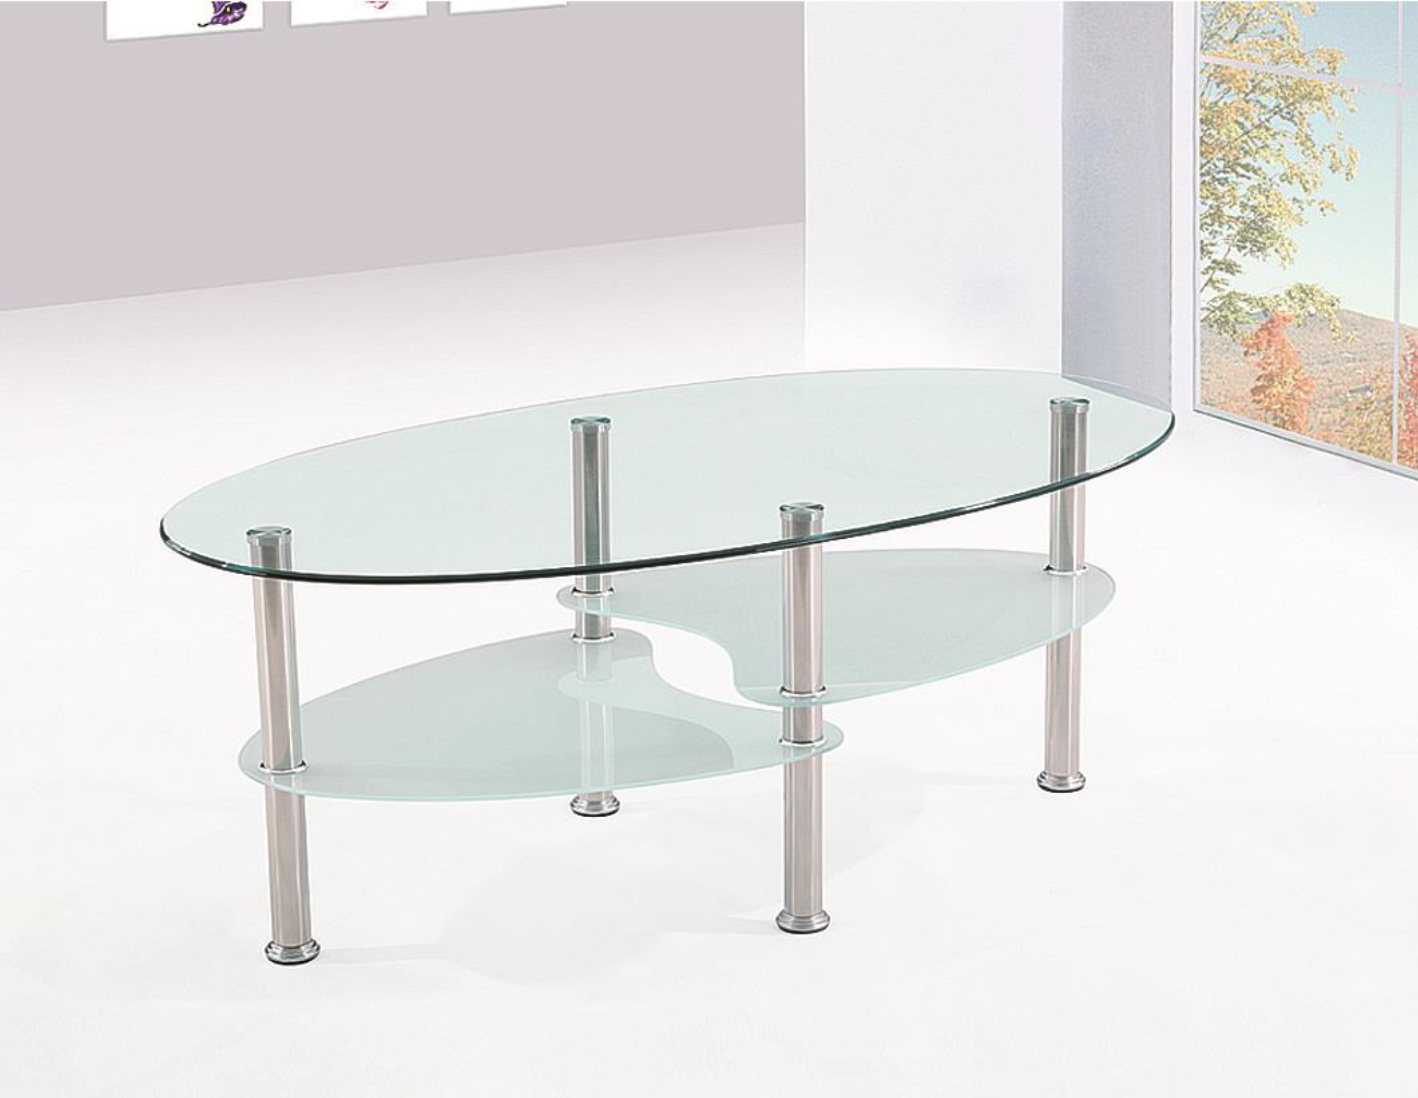 table basse 3 plateaux a63t electro discount. Black Bedroom Furniture Sets. Home Design Ideas